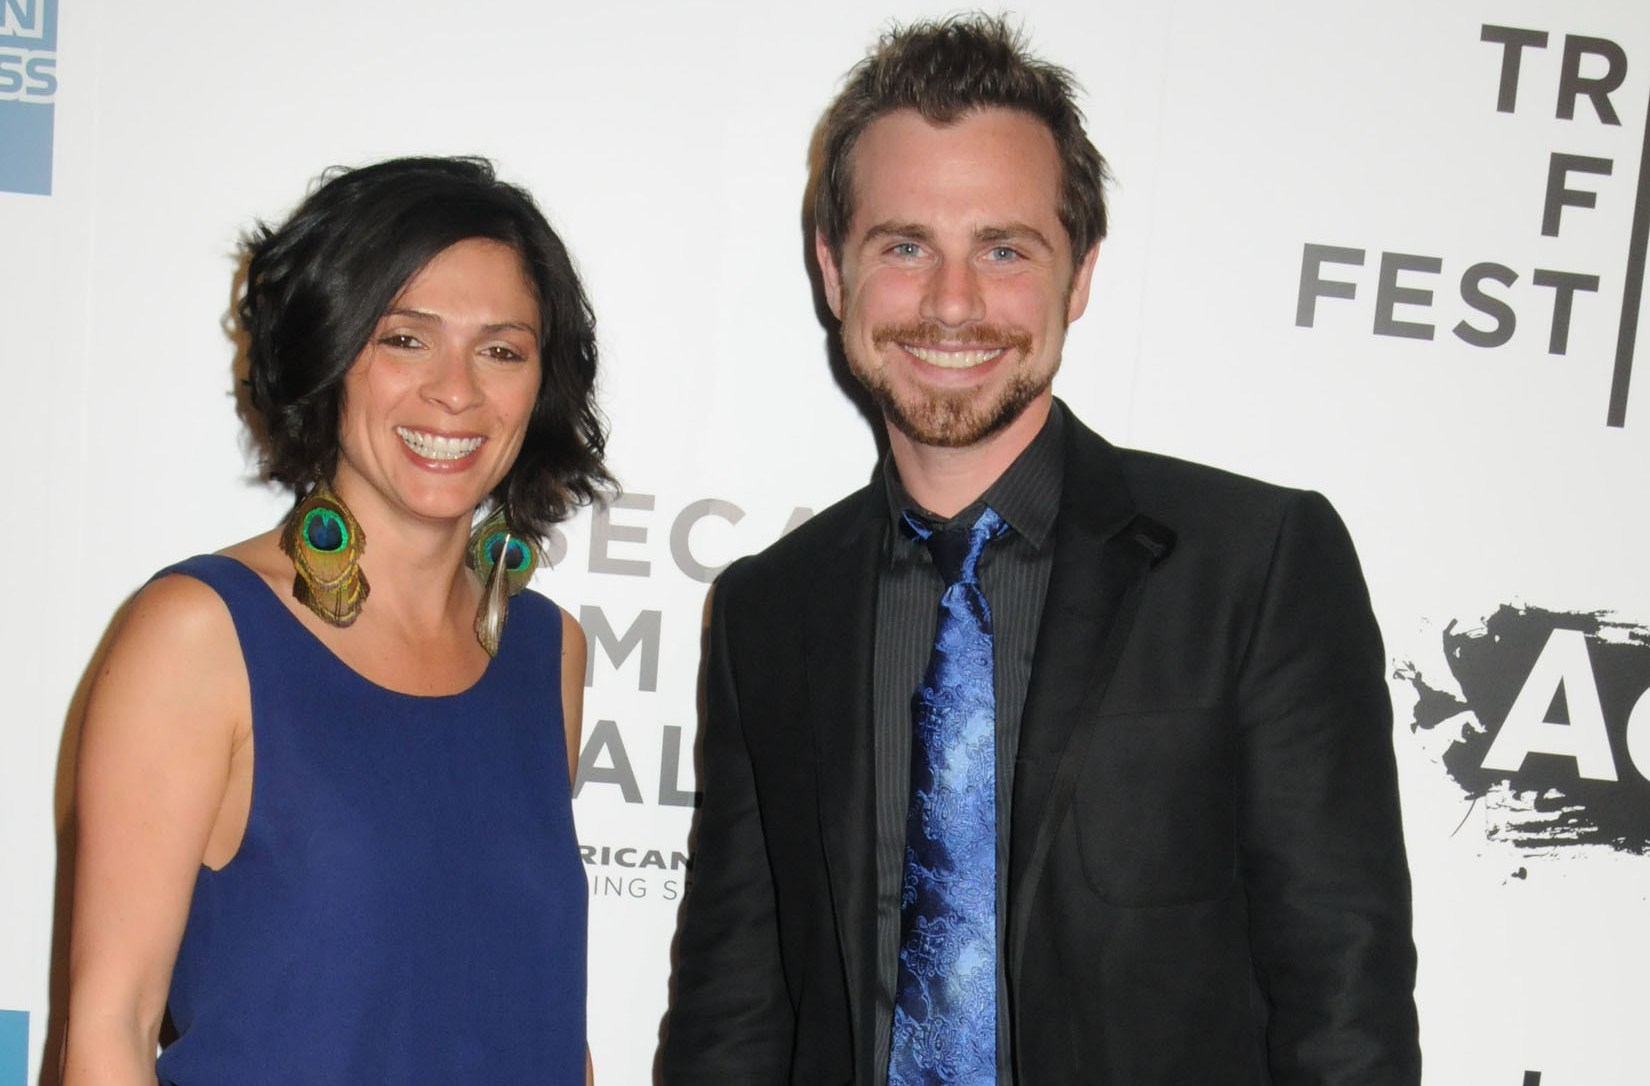 Celebrity guests arrive for the Tribeca Film Festival Opening Night and World Premiere of 'The Union' in NYC